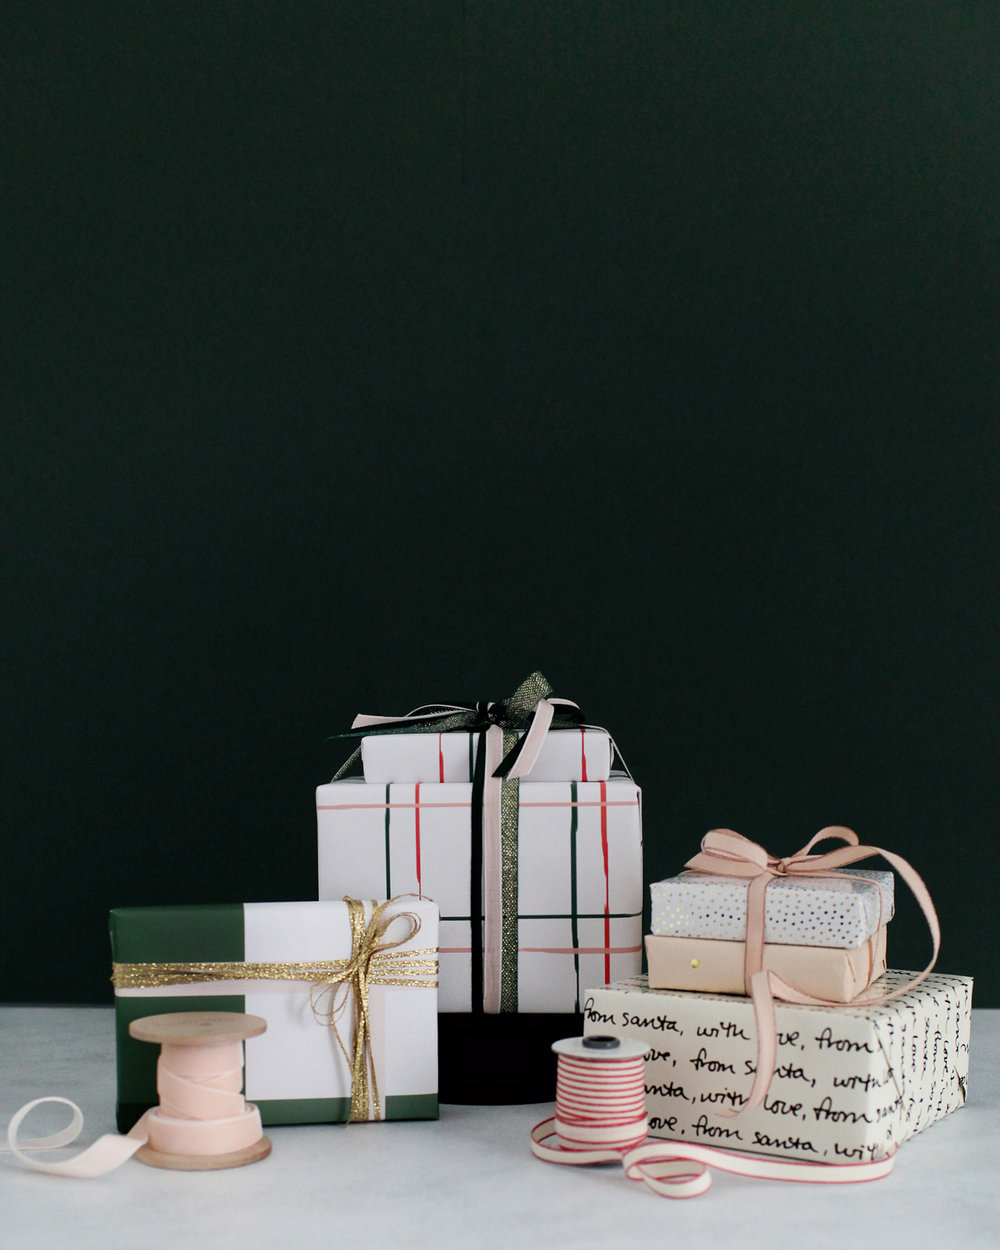 Green-and-Neutral-Holiday-Gift-Wrap-Inspiration-7.jpg